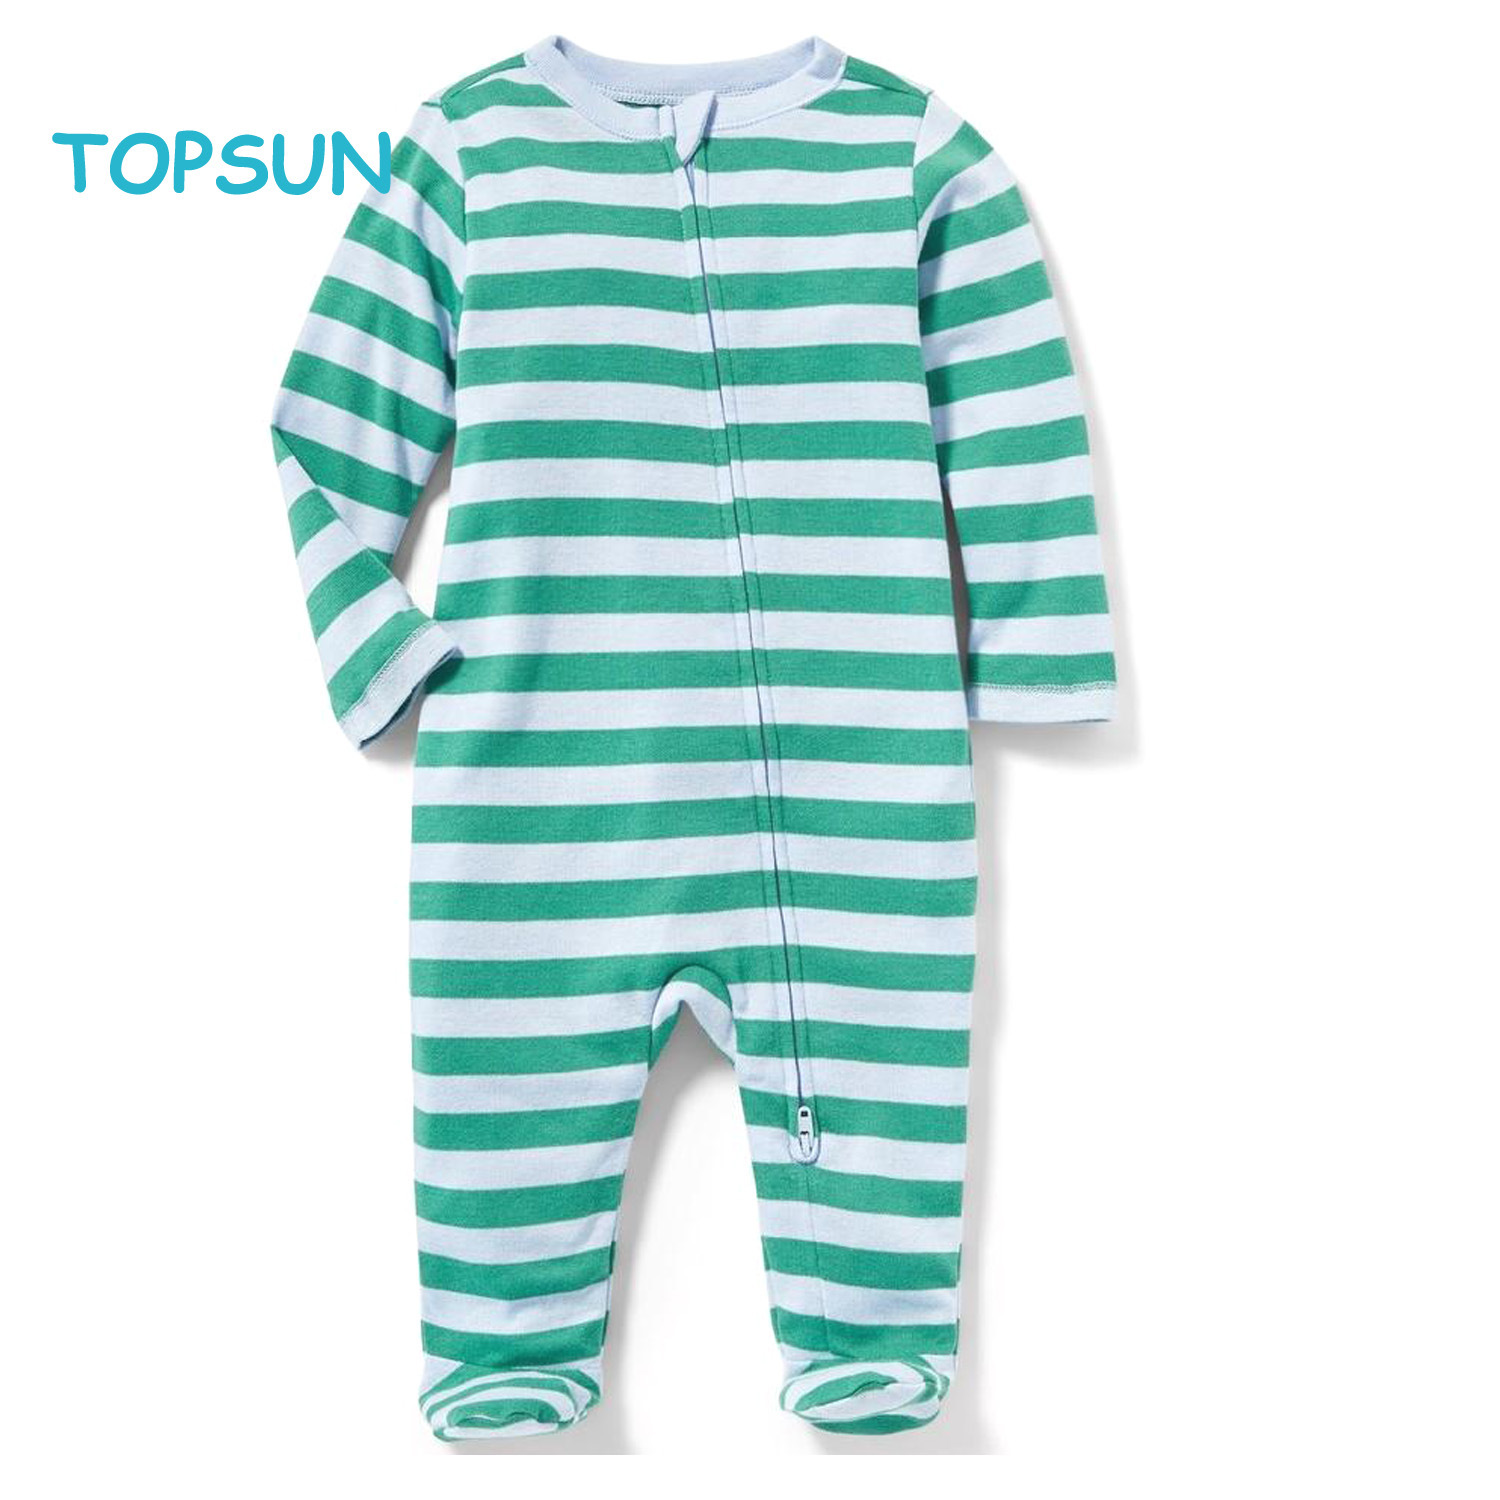 69ce83c21 China Baby Autumn Winter Thermal Clothes Crew Neck Babysuit High ...